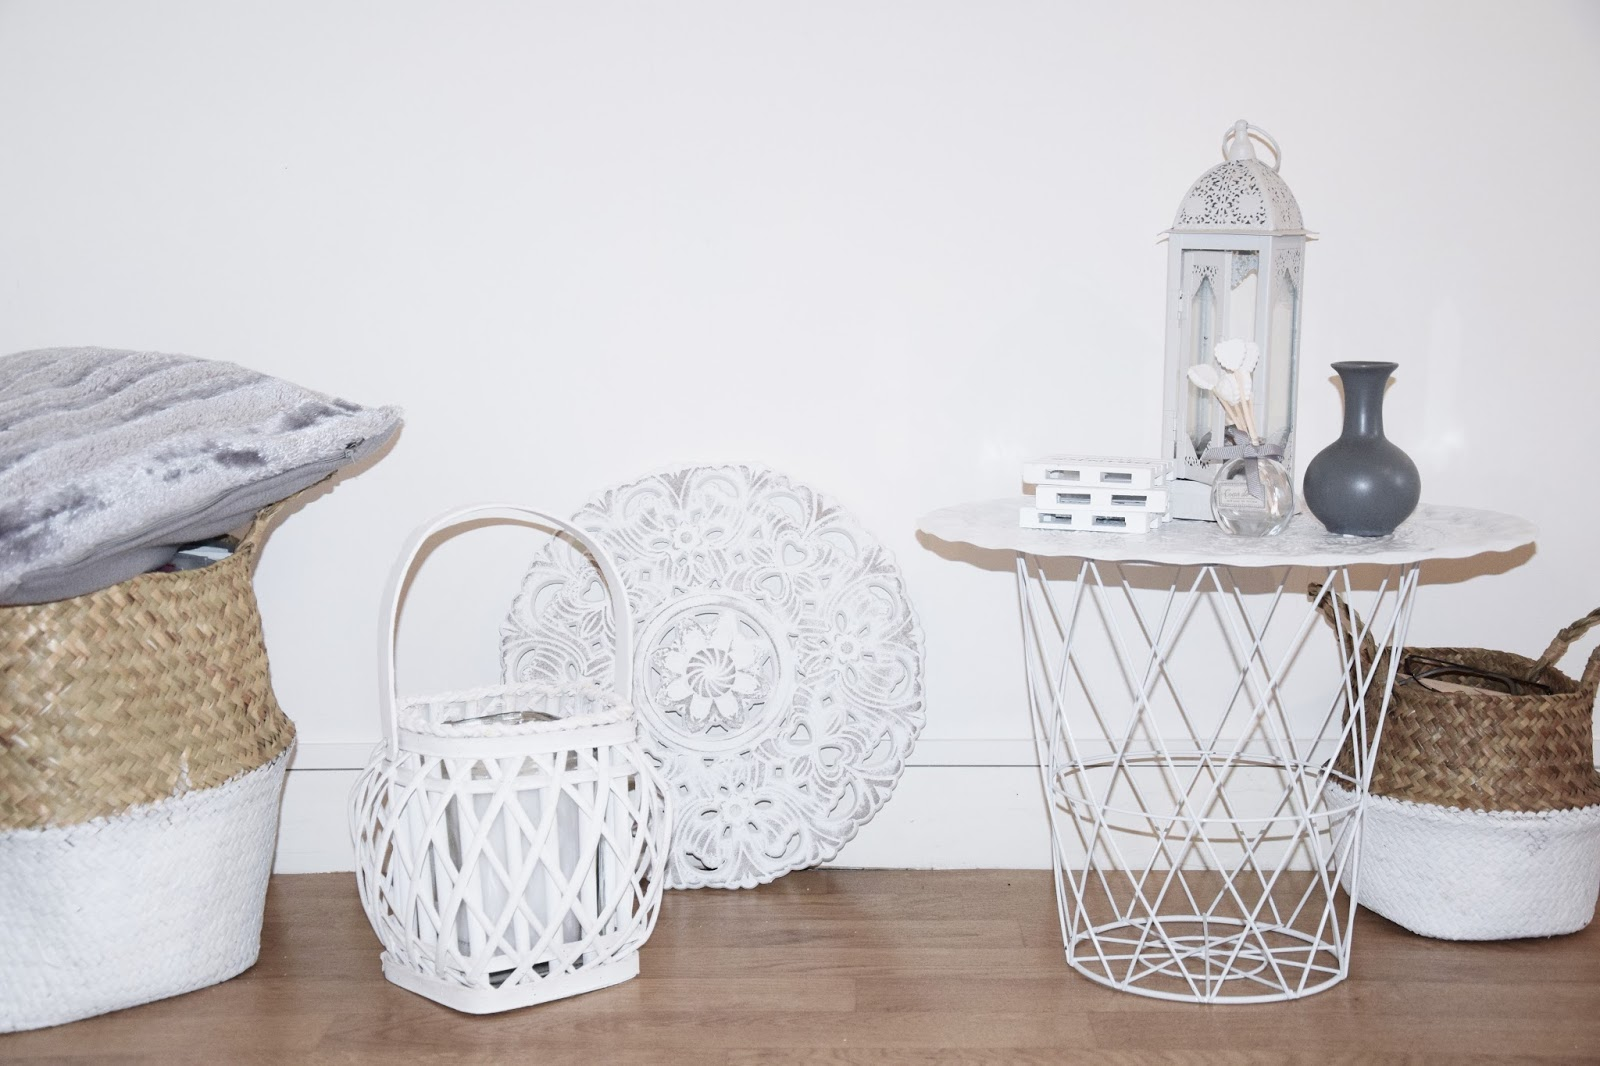 Tati Boite De Rangement Lauriane Blogueuse Lifestyle Clermont Ferrand Decor At Home